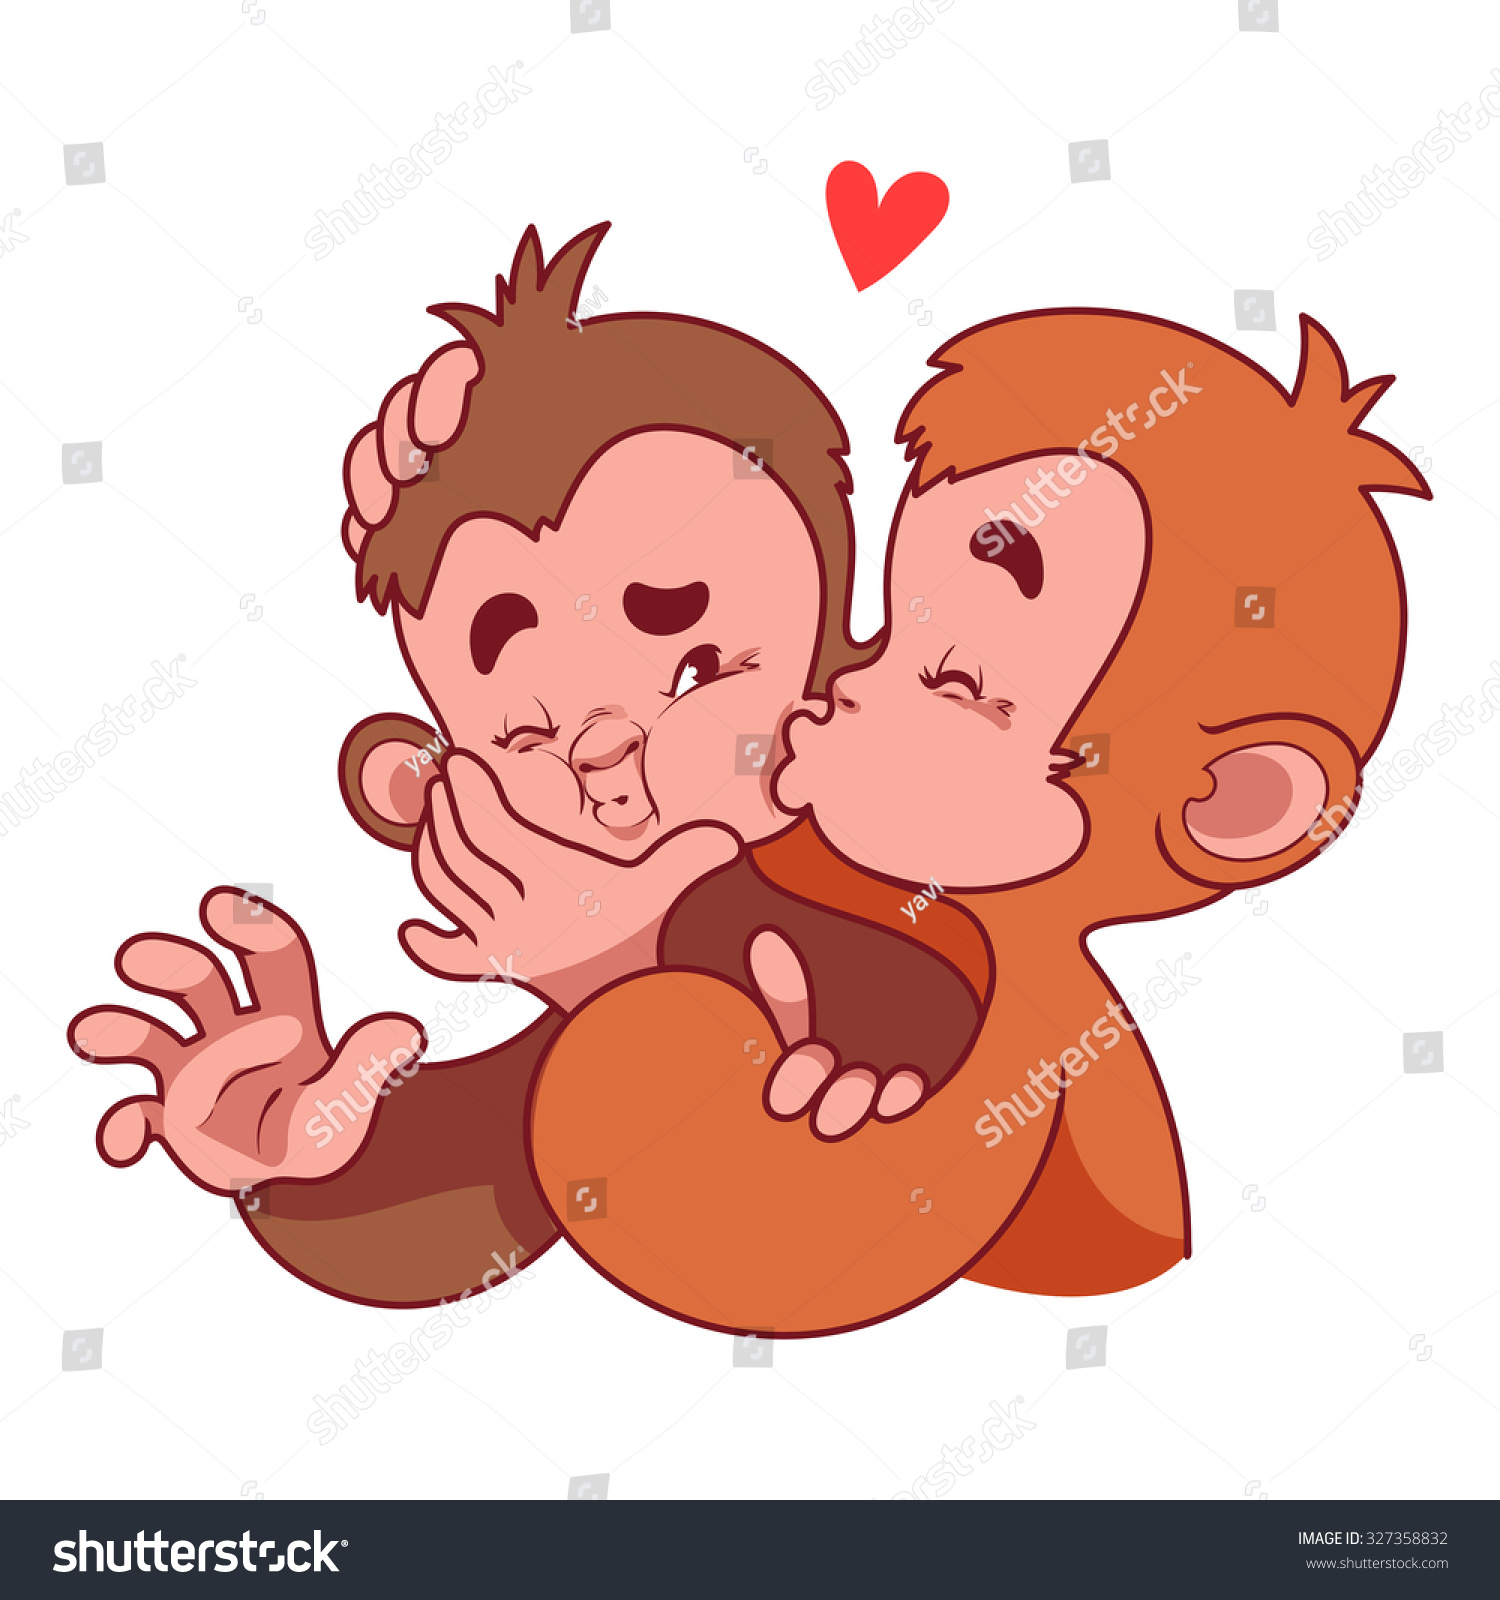 Two monkeys hugging drawing - photo#4